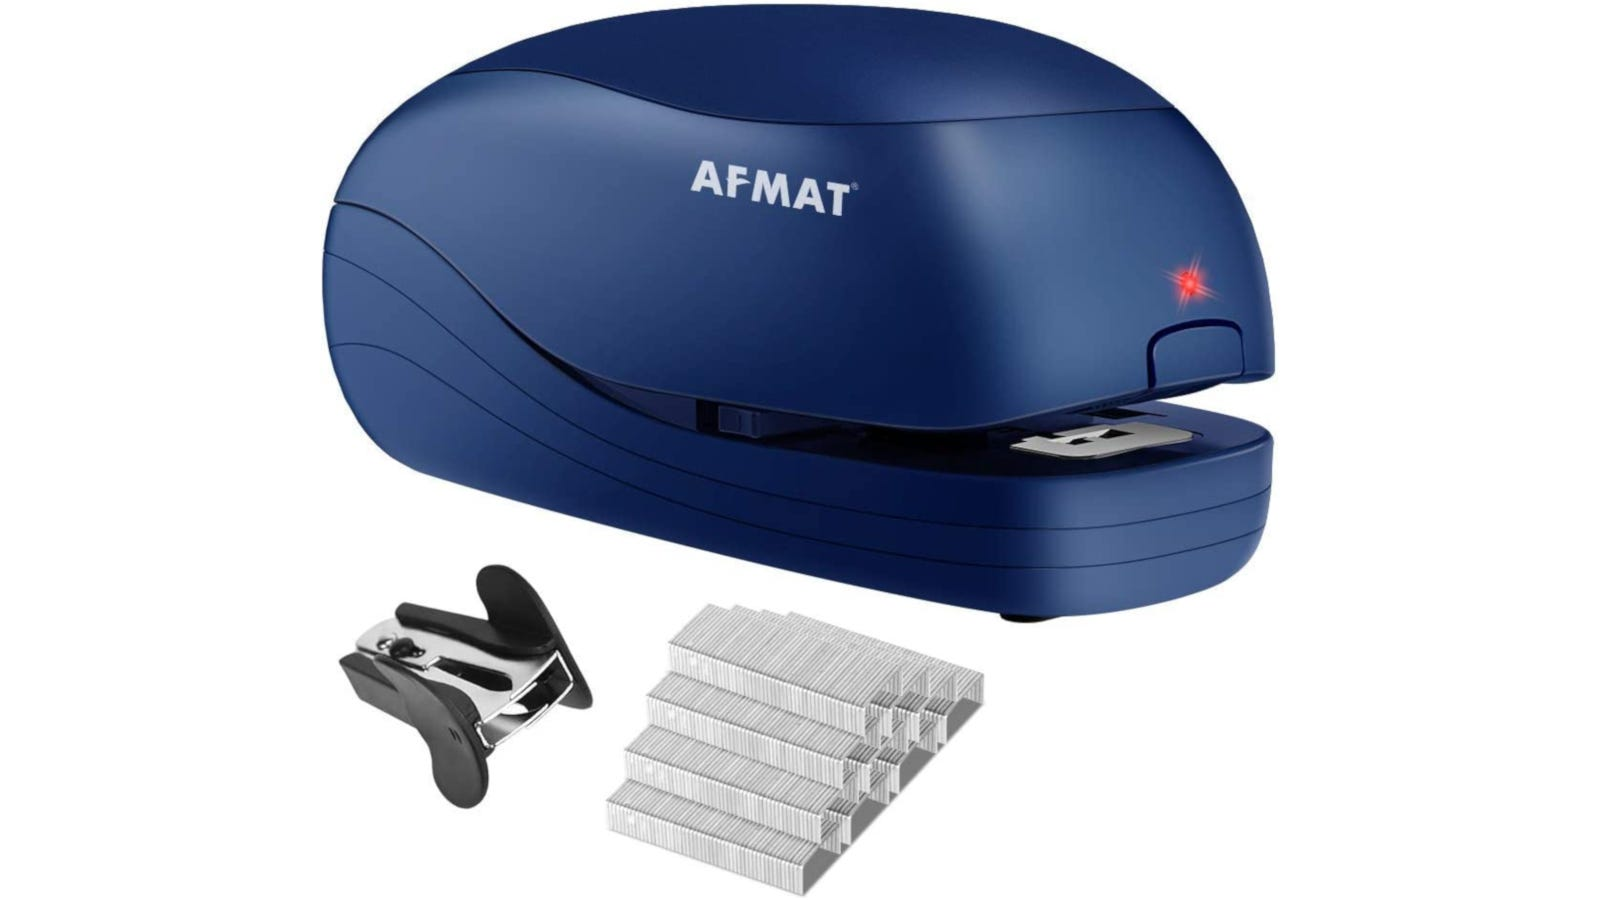 A blue electric stapler with a red light shown over a staple remover and stack of new staples.